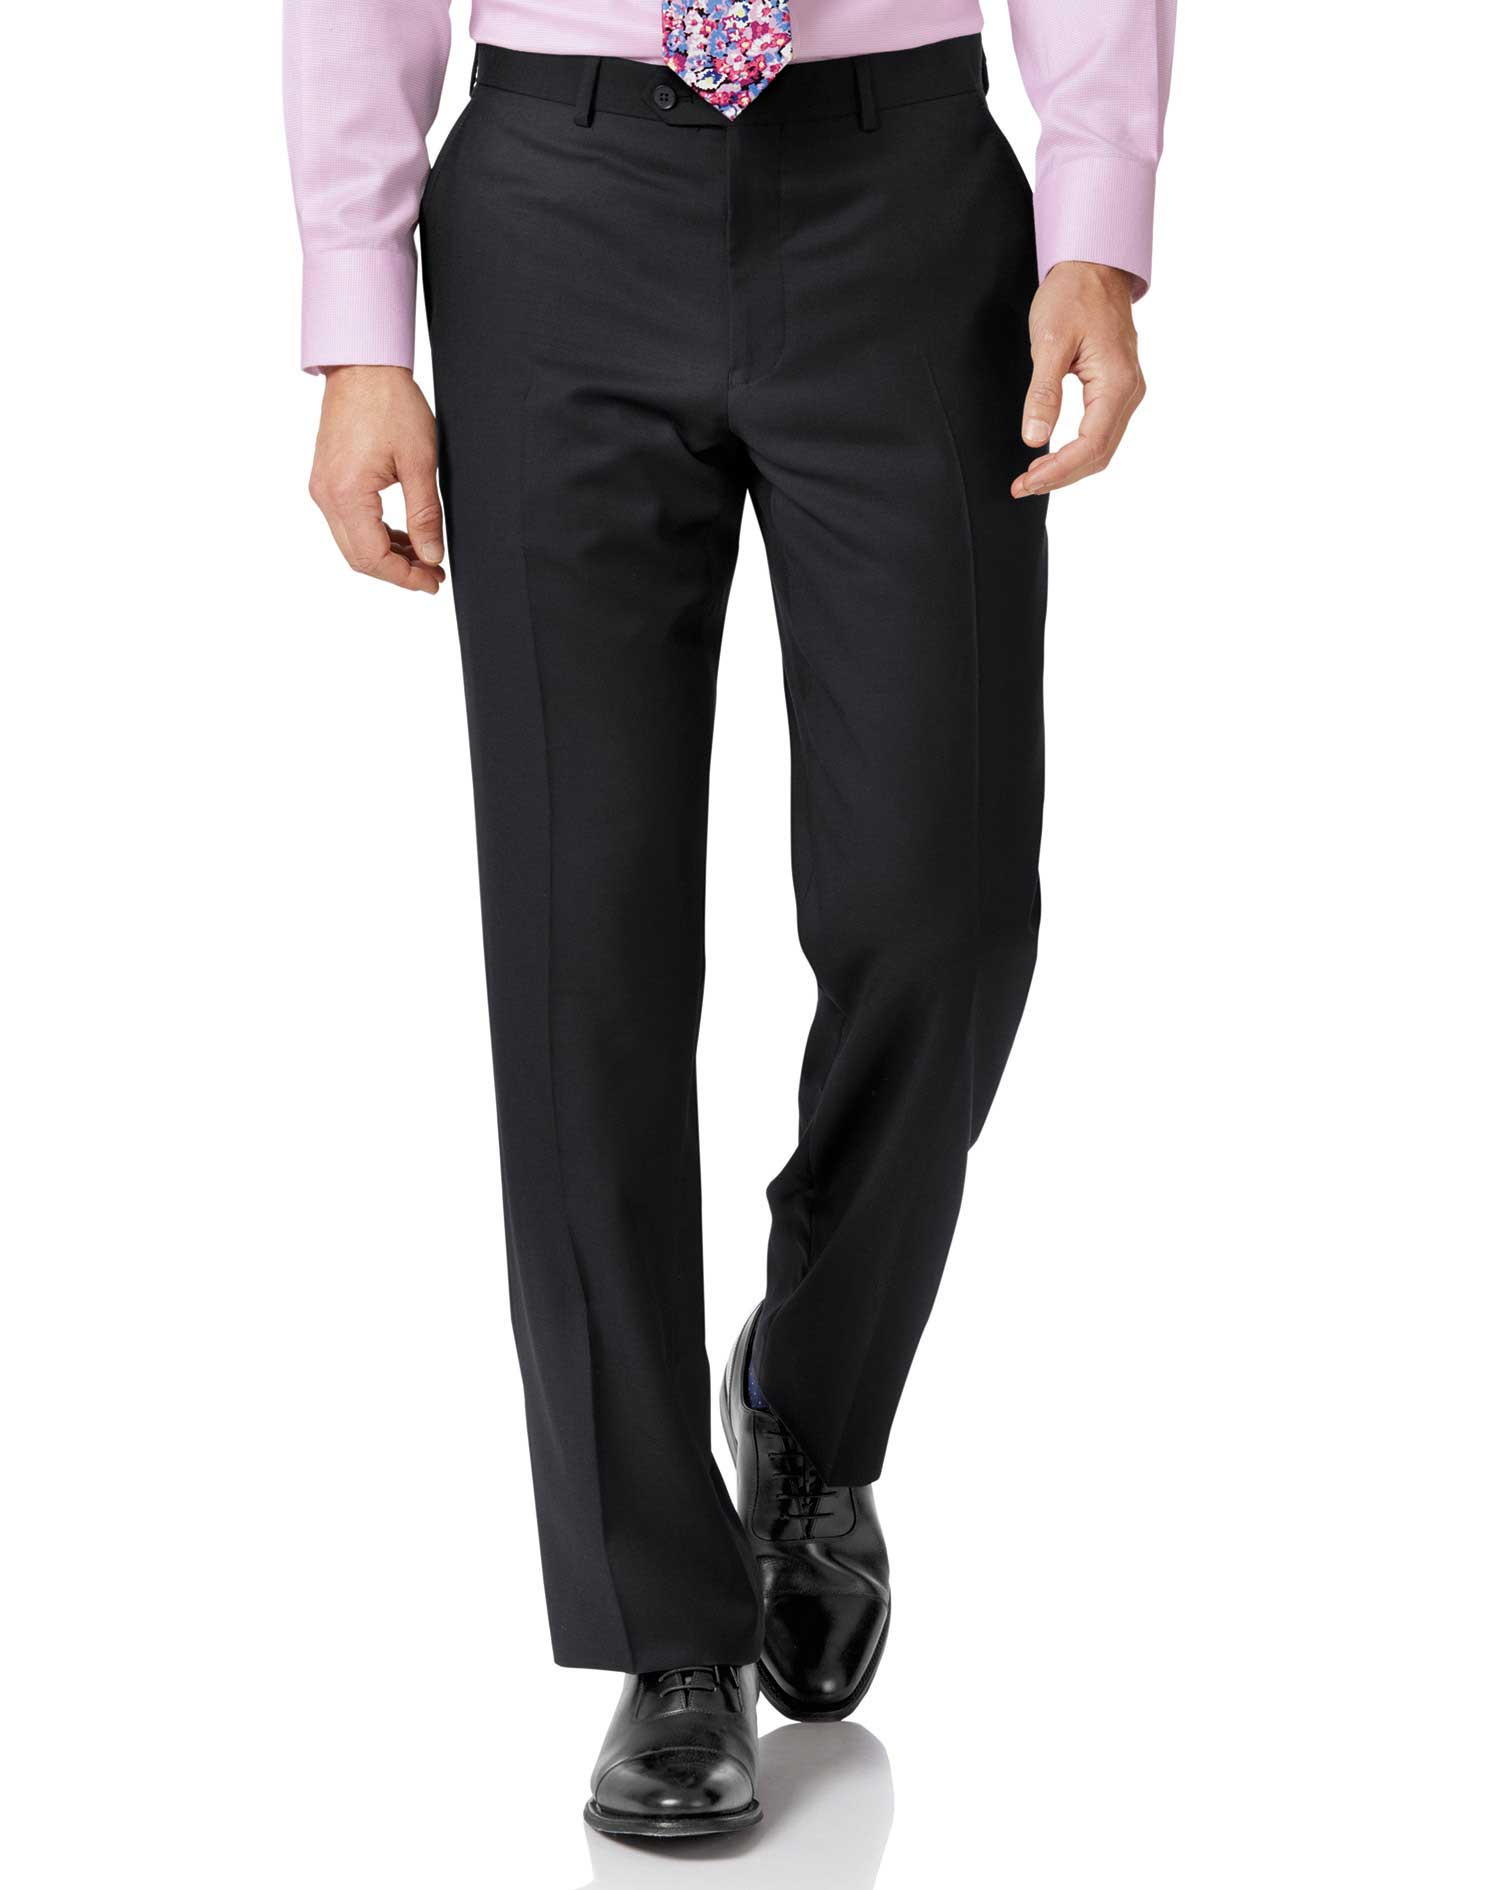 Black Classic Fit Twill Business Suit Trousers Size W42 L38 by Charles Tyrwhitt